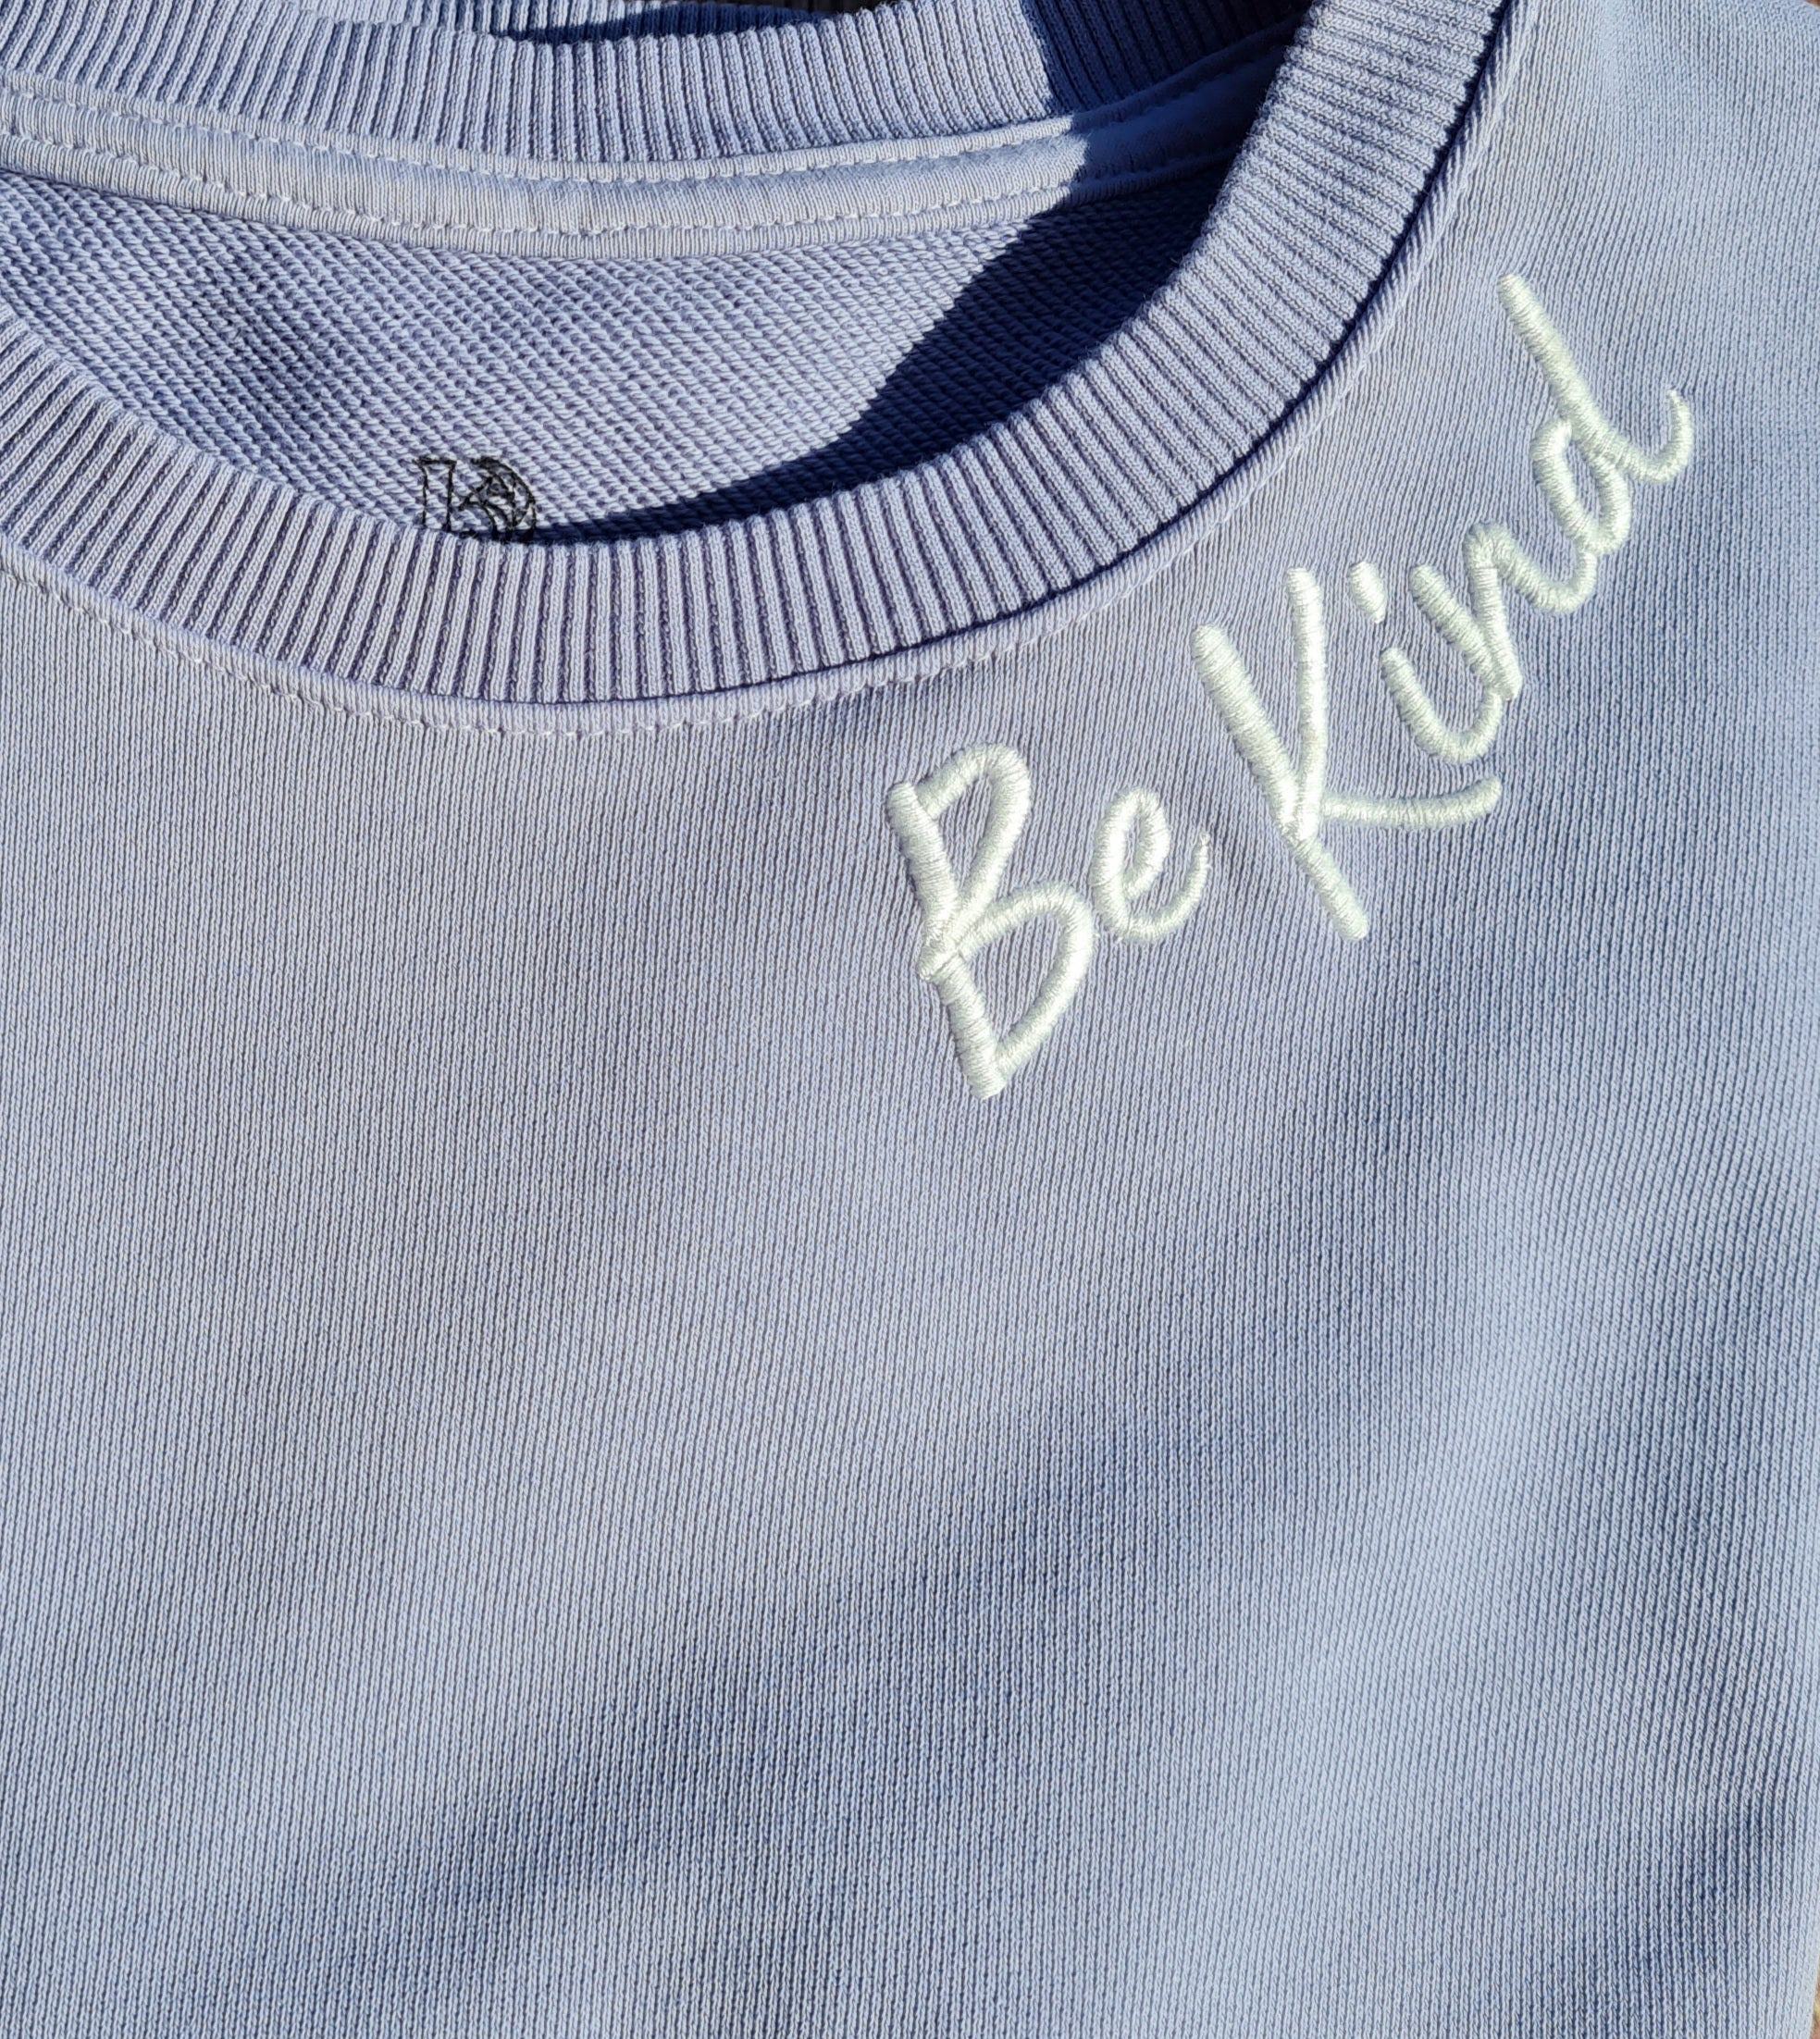 Phoenix | Be Kind (Lilac & White)